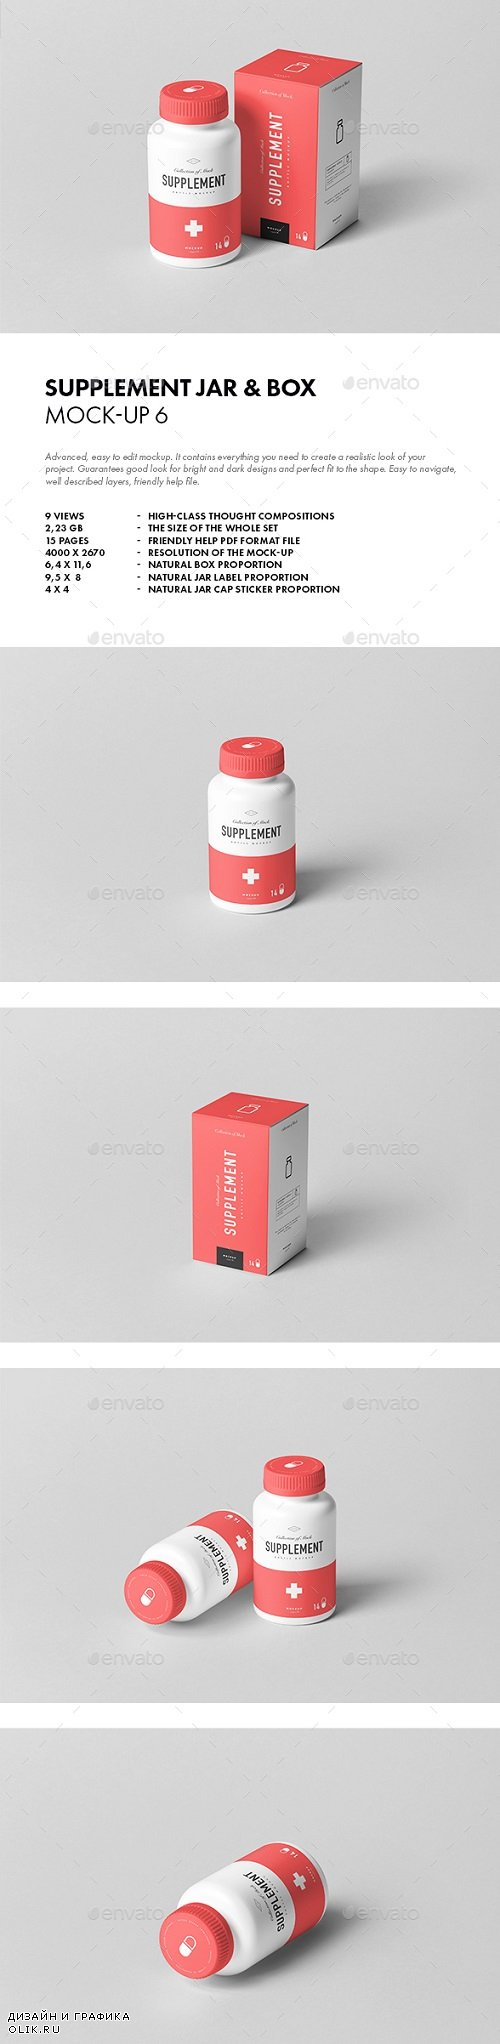 Supplement Jar & Box Mock-up 6 20875850